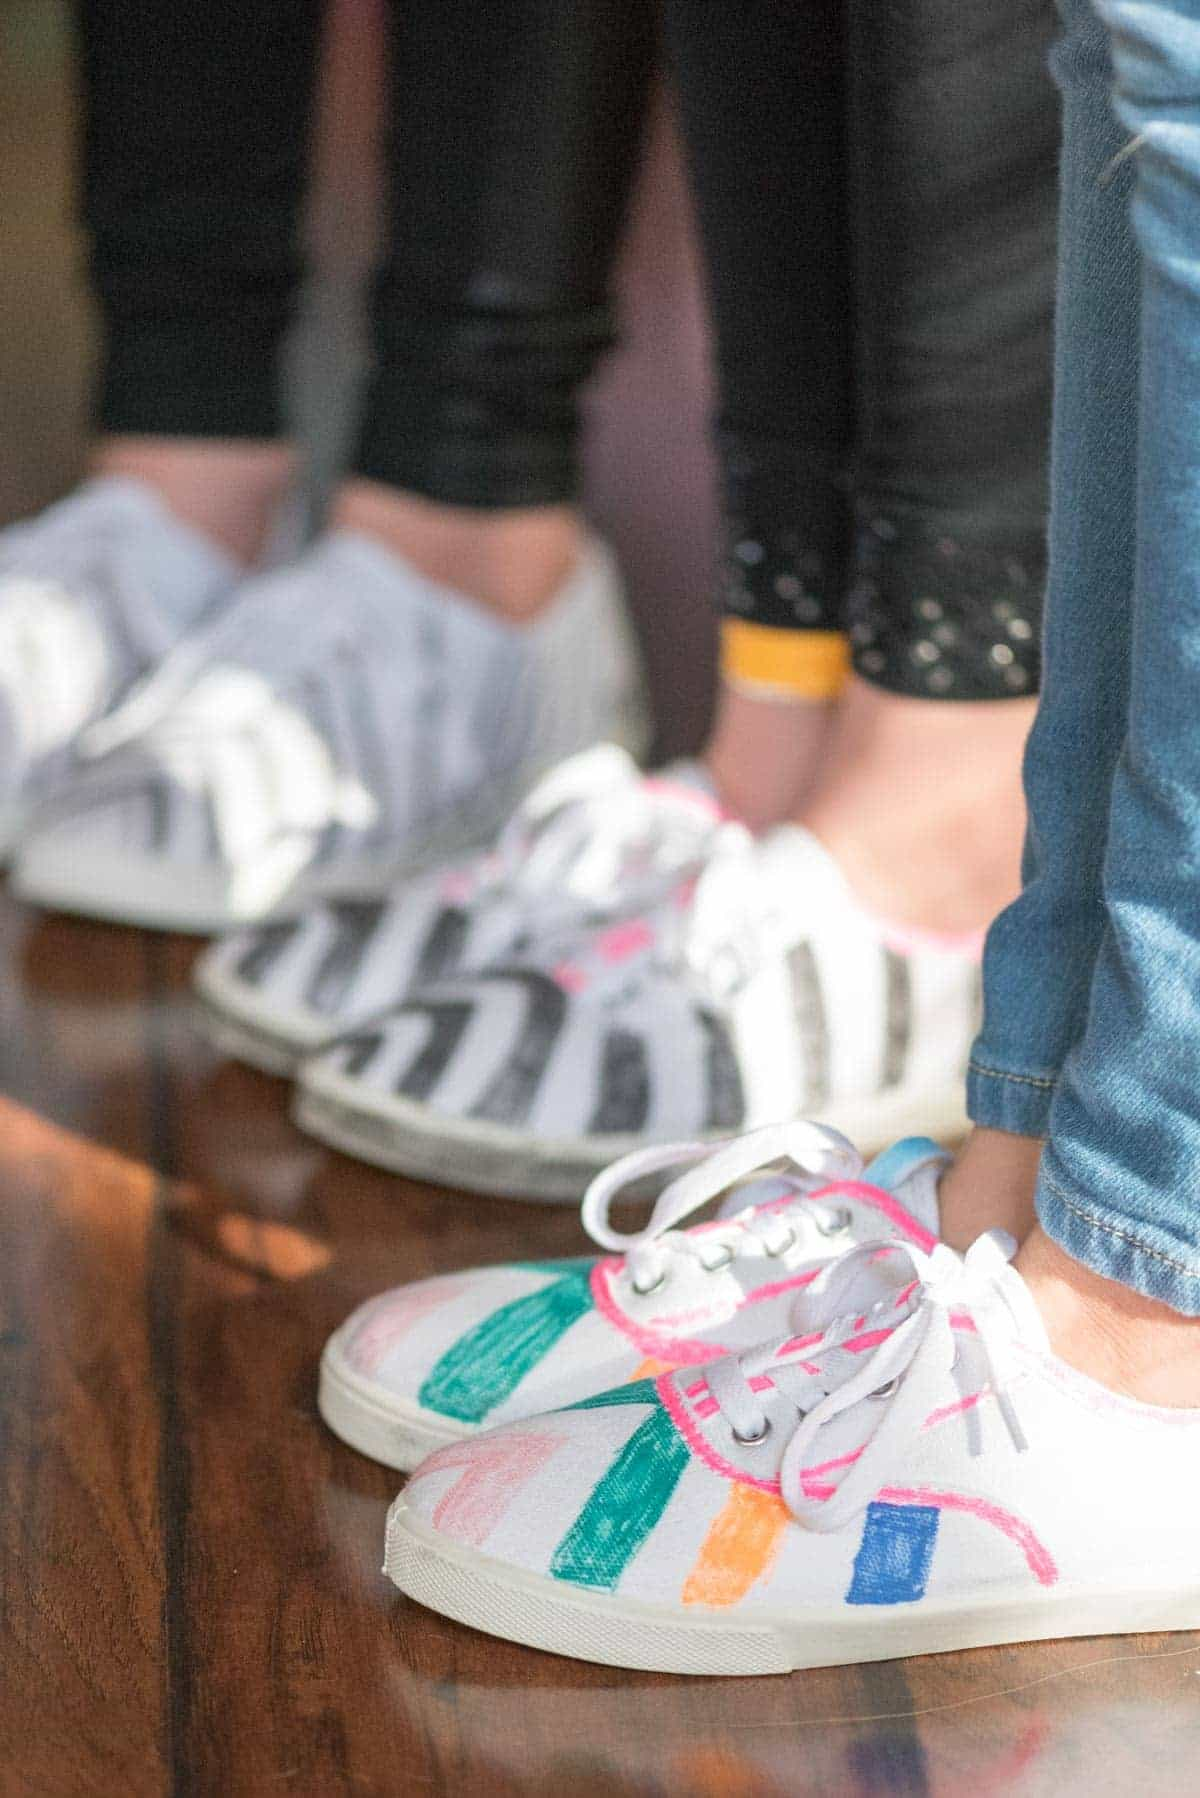 Taylor Swift Party - decorated Keds!